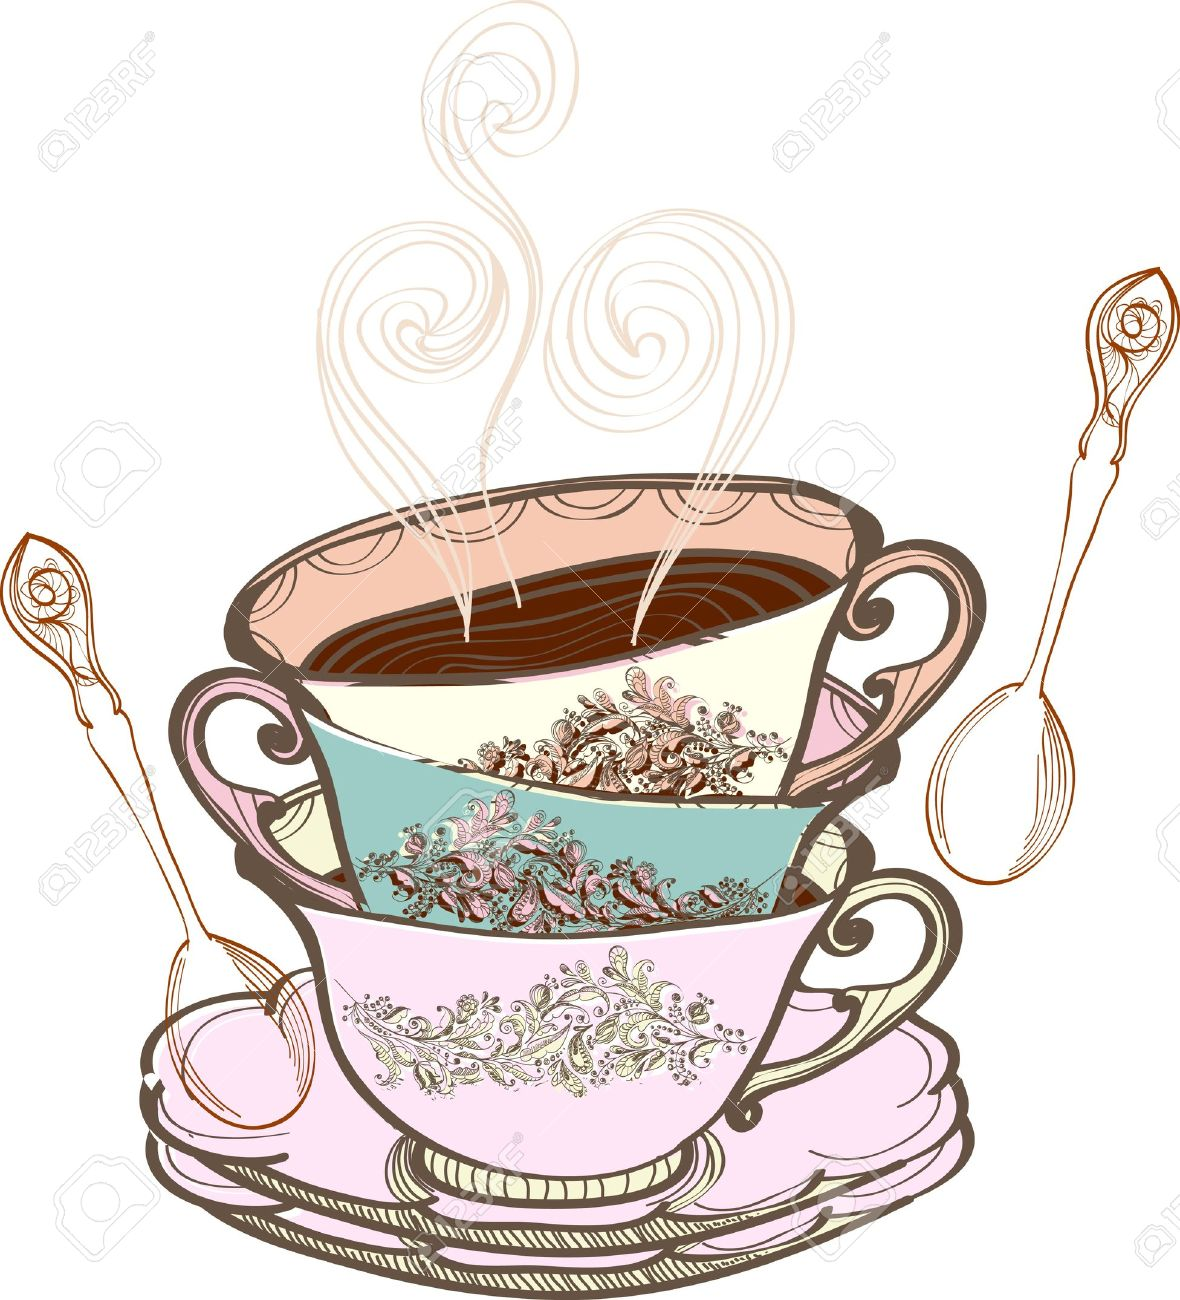 Elegant tea party invitation template with teacups cartoon vector - Afternoon Tea Party Tea Cup Background With Spoon Illustration